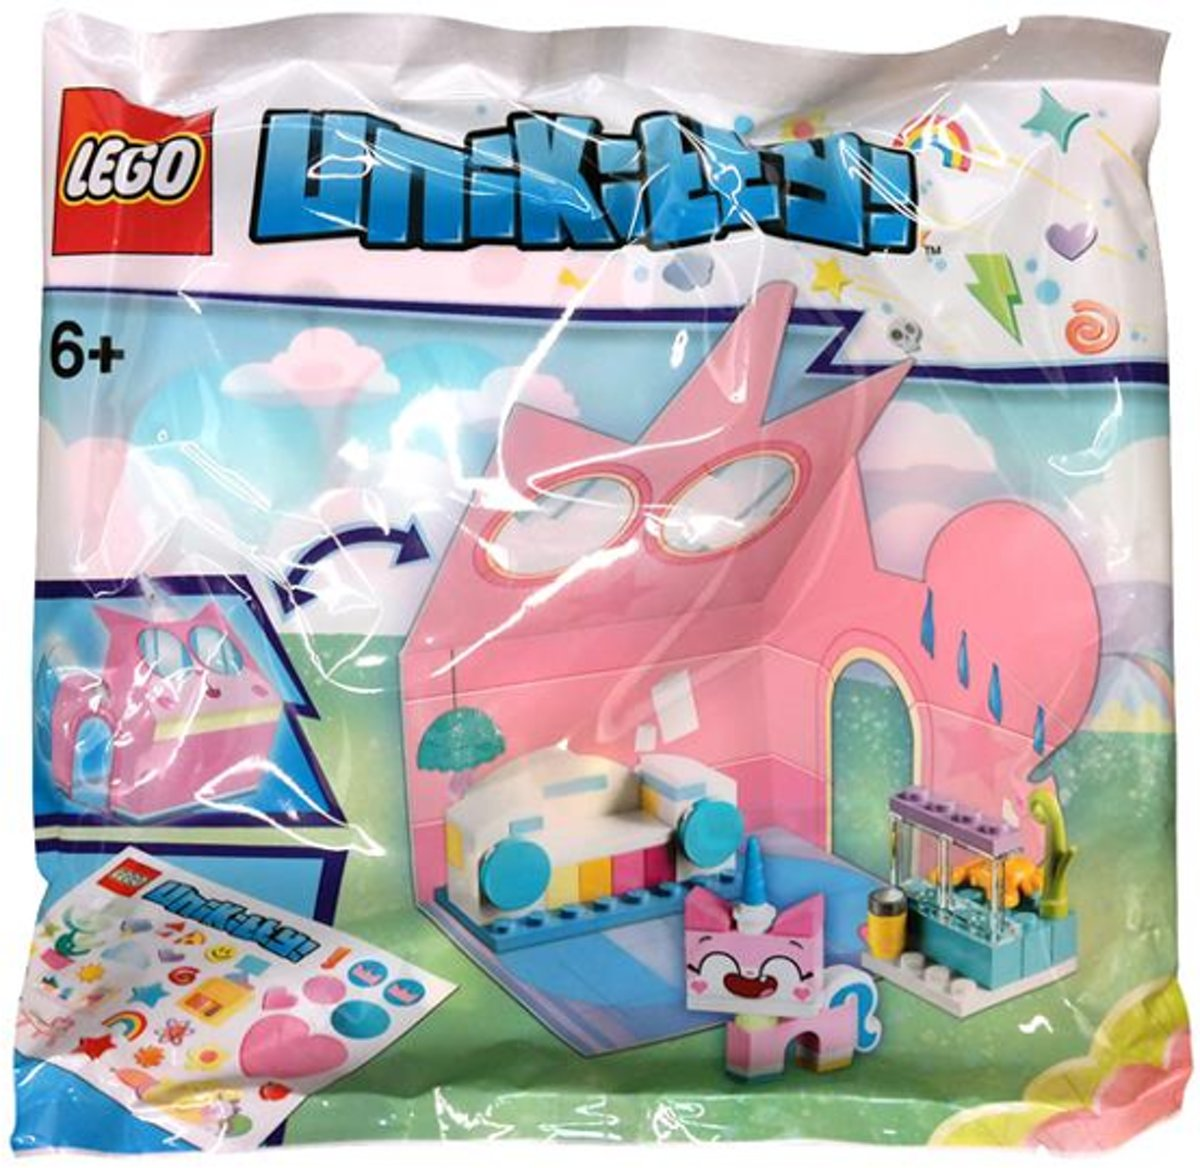 Lego Unikitty Castle Room Promo Polybag (kasteel kamer)